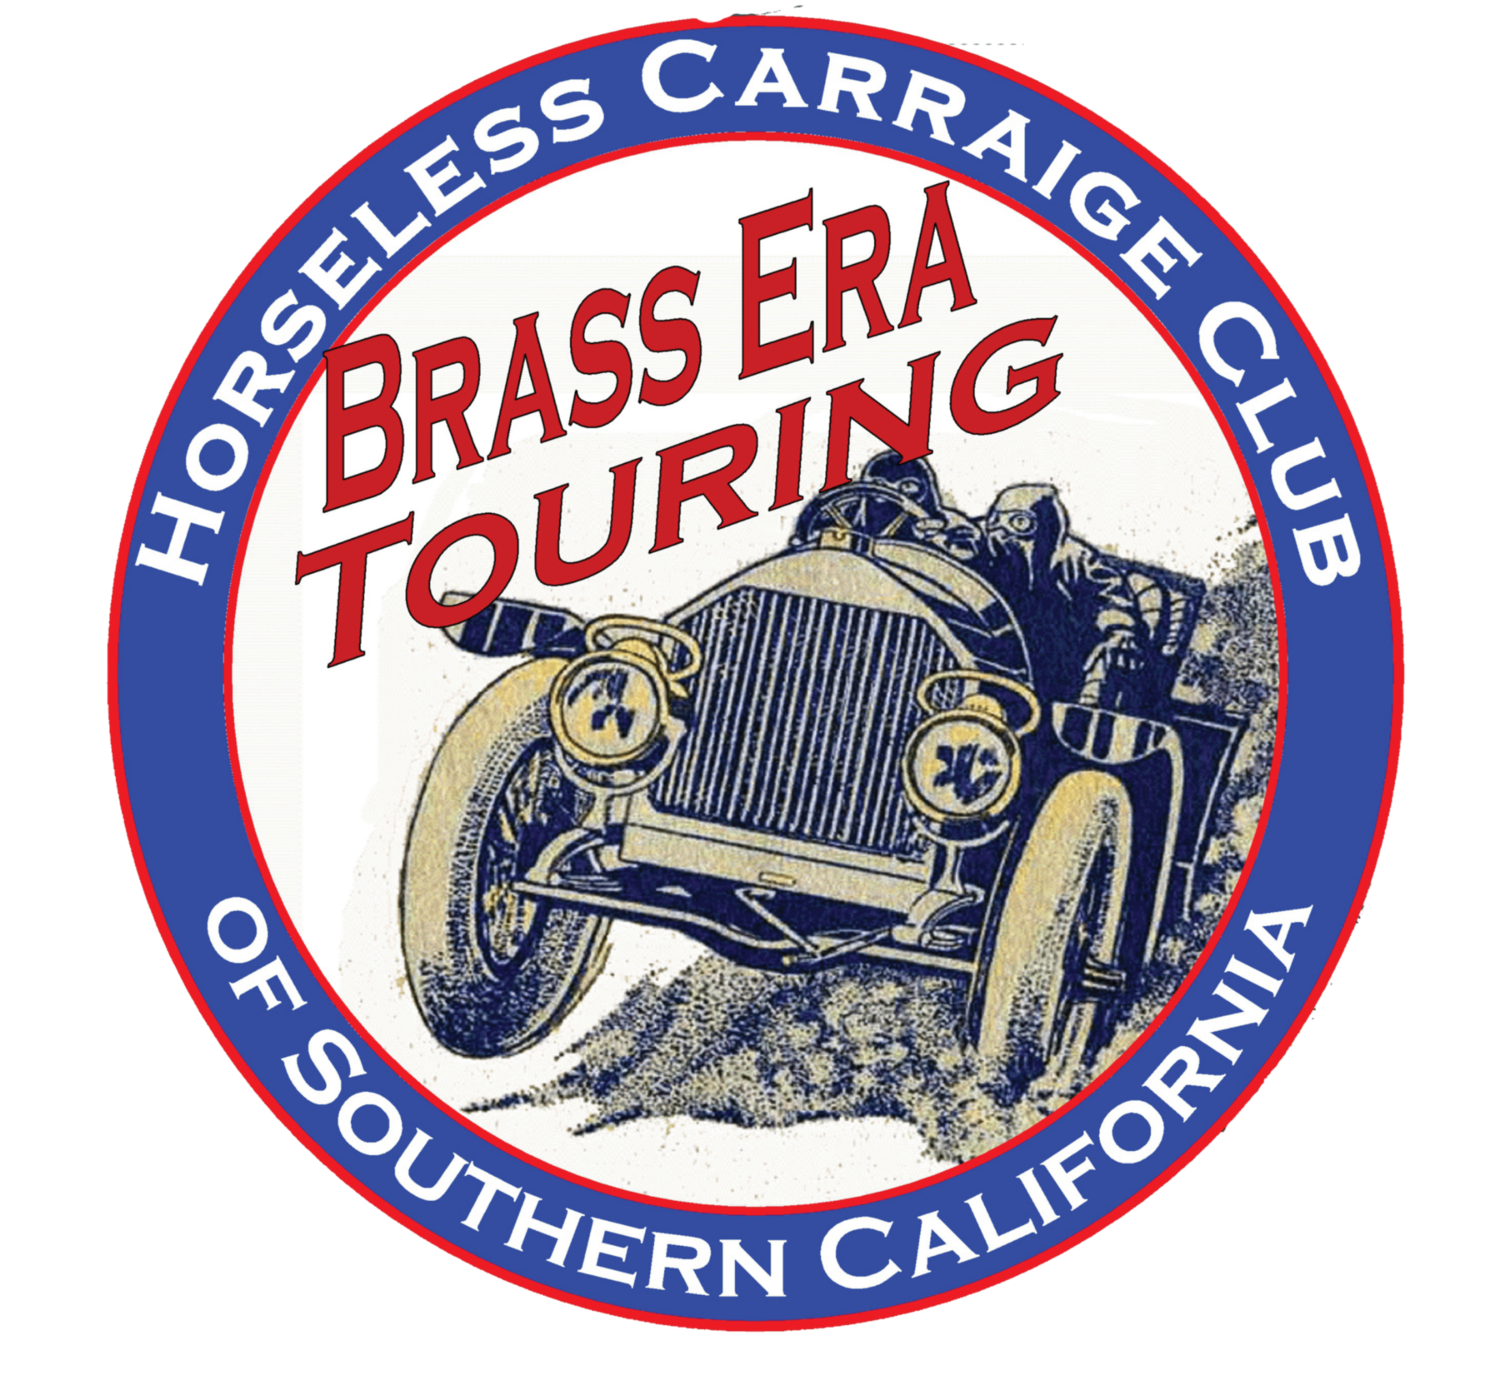 Horseless Carriage Club of Southern California